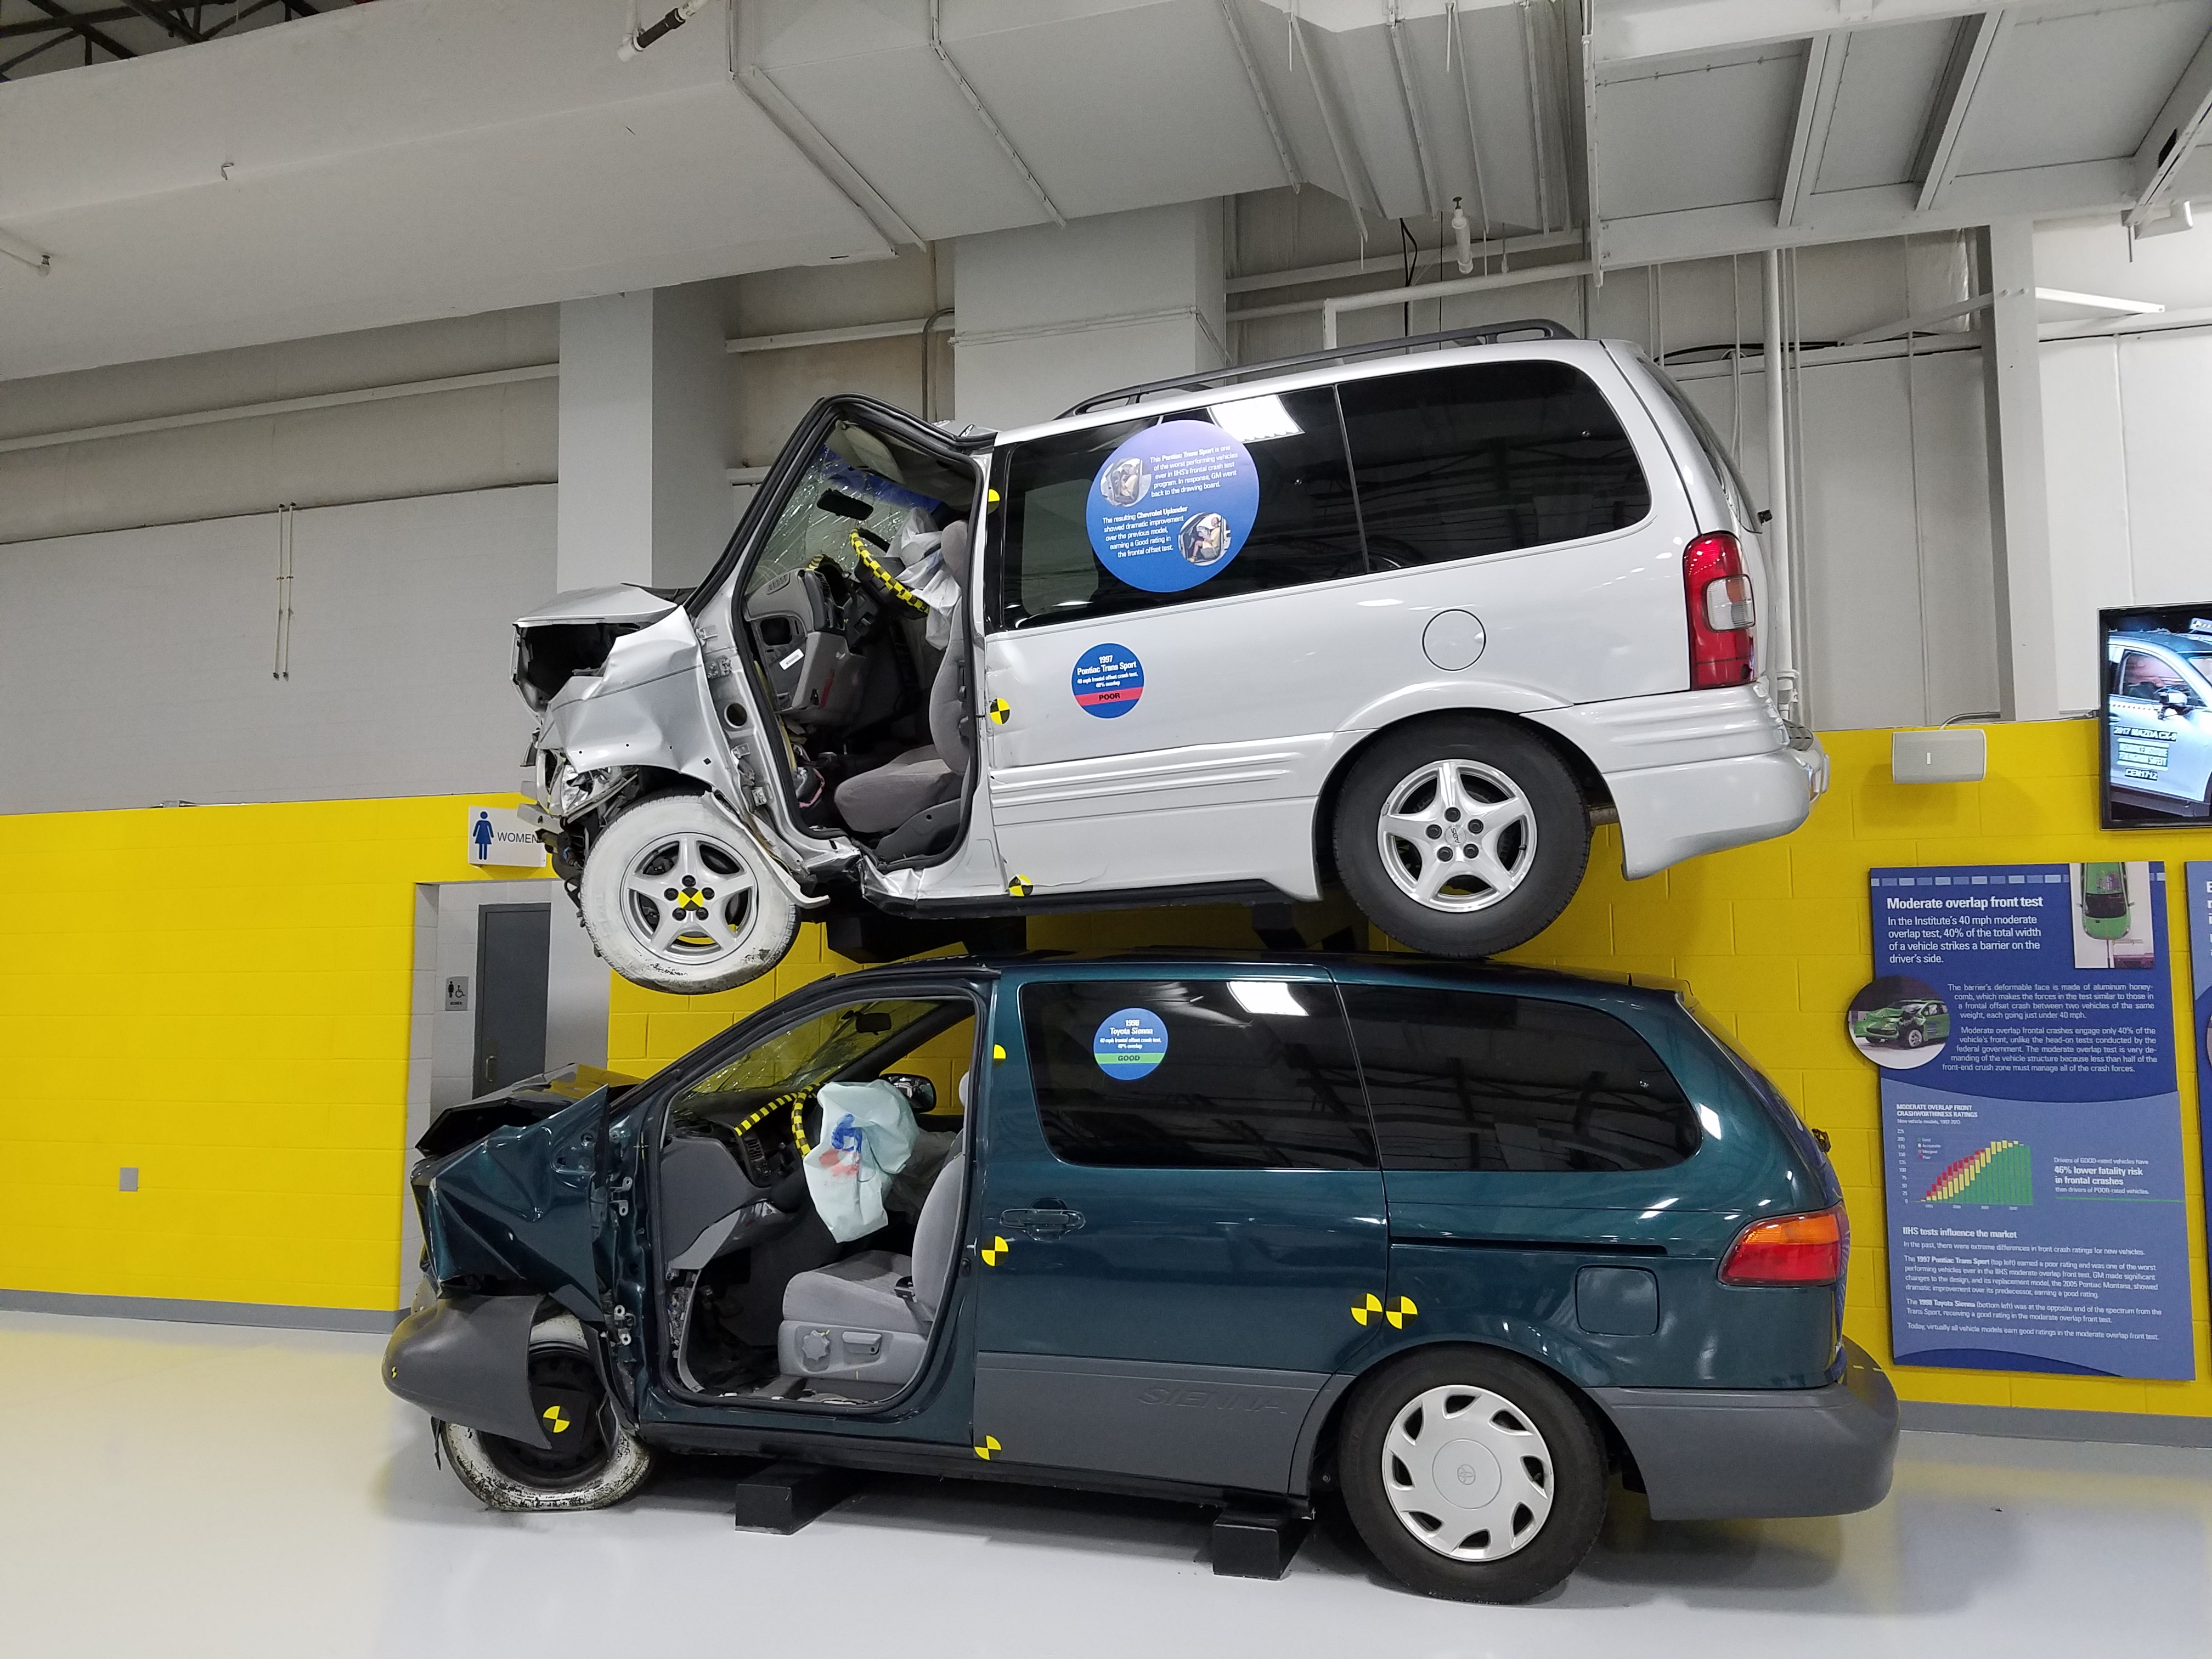 Crash test for a Toyota Sienna and a Pontiac Trans Sport